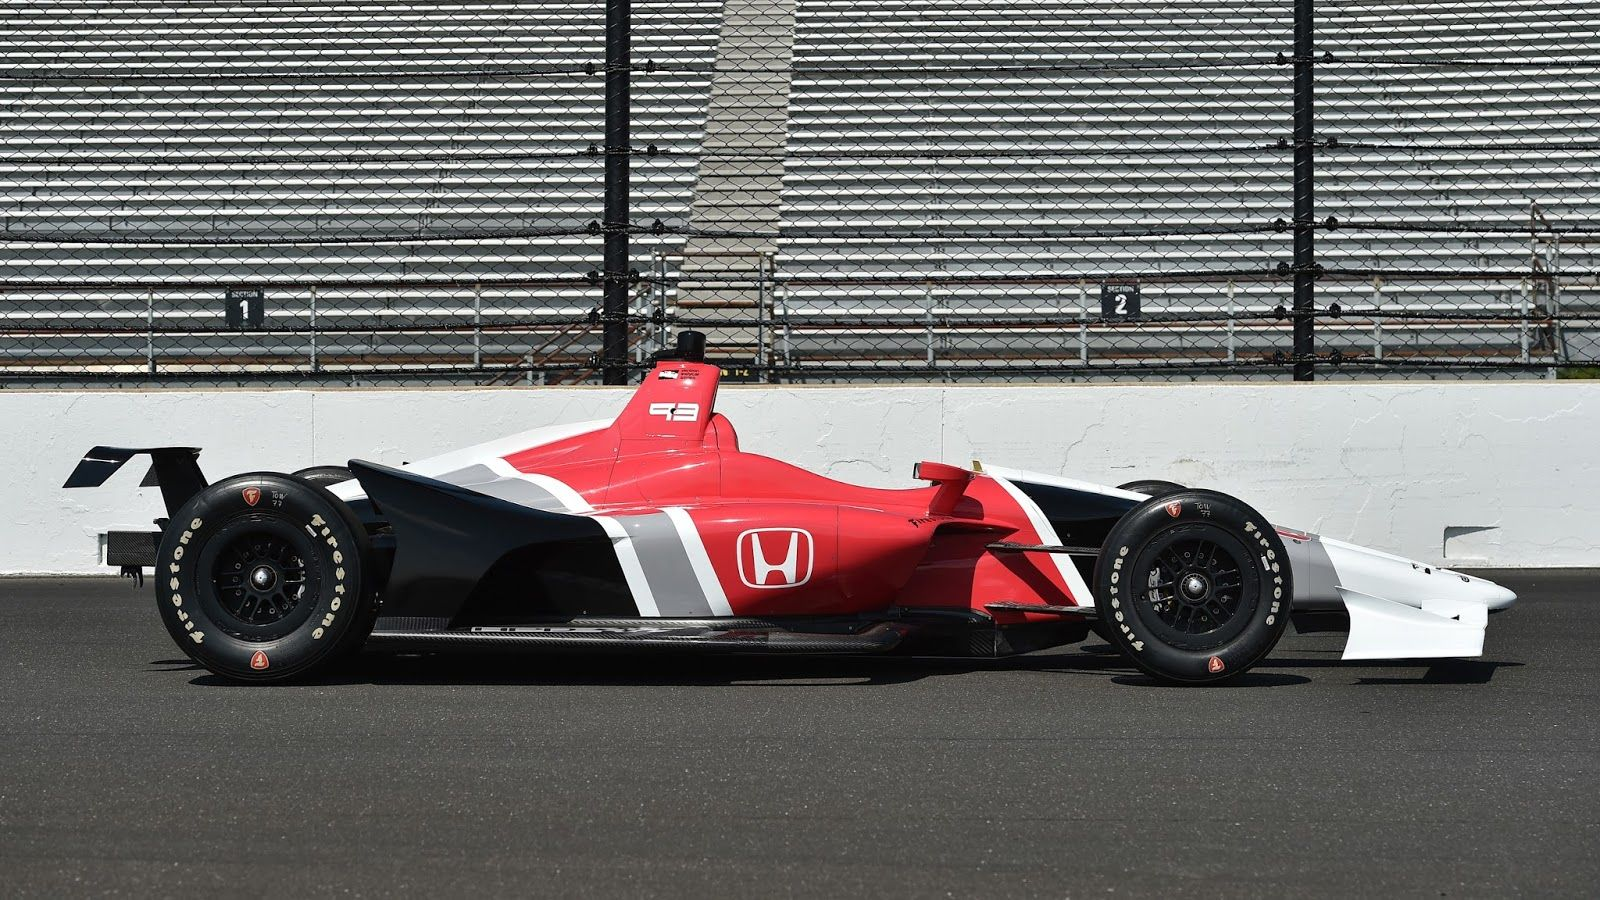 2018 Indycar Next Debuts Bold Aero Changes Carscoops Indy Cars Aero Debut